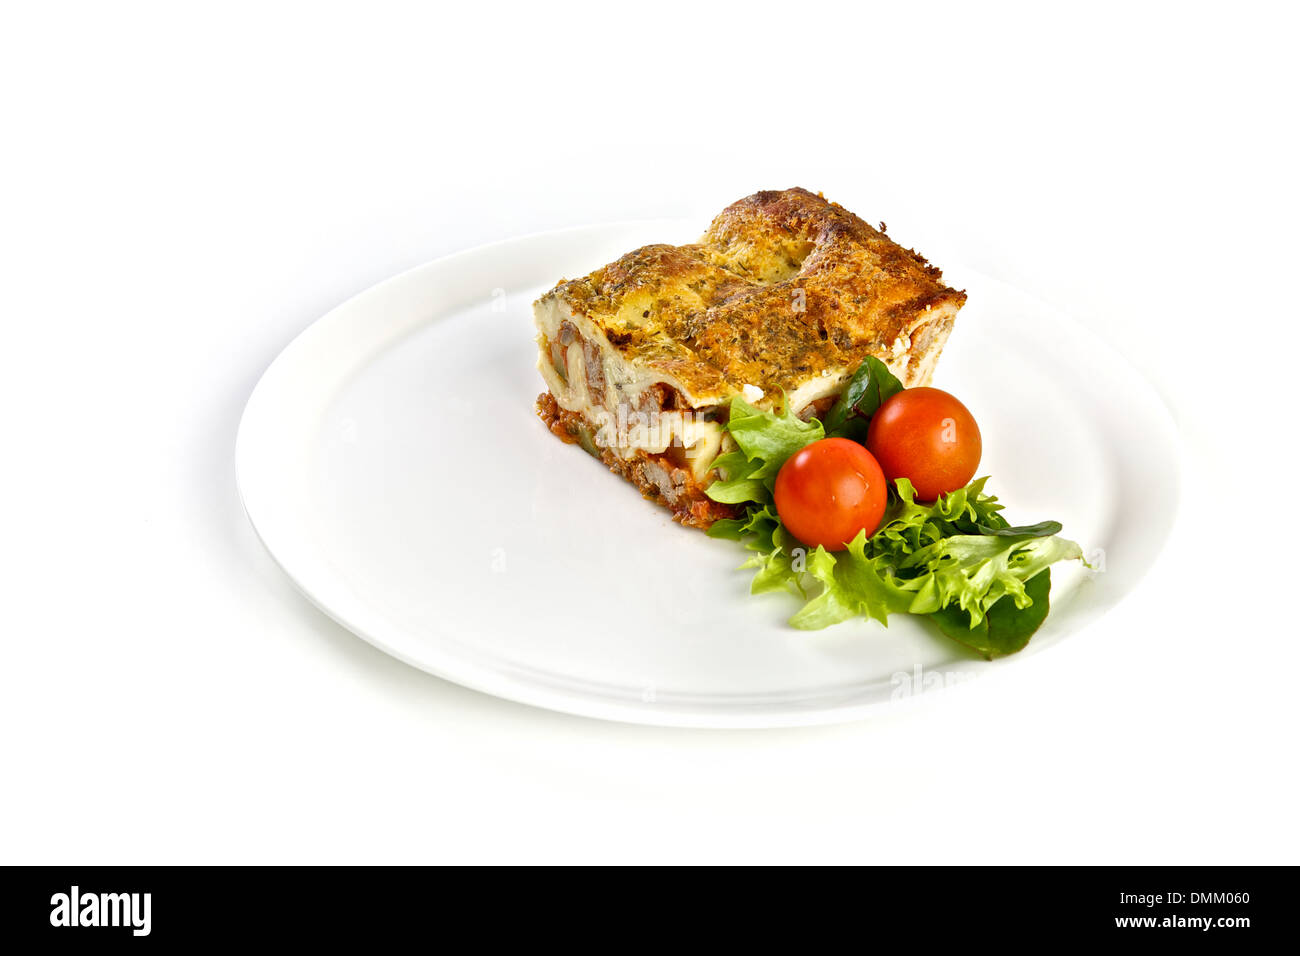 Delicious lasagna with a salad on a plate lunch or dinner  sc 1 st  Alamy & Delicious lasagna with a salad on a plate lunch or dinner Stock ...